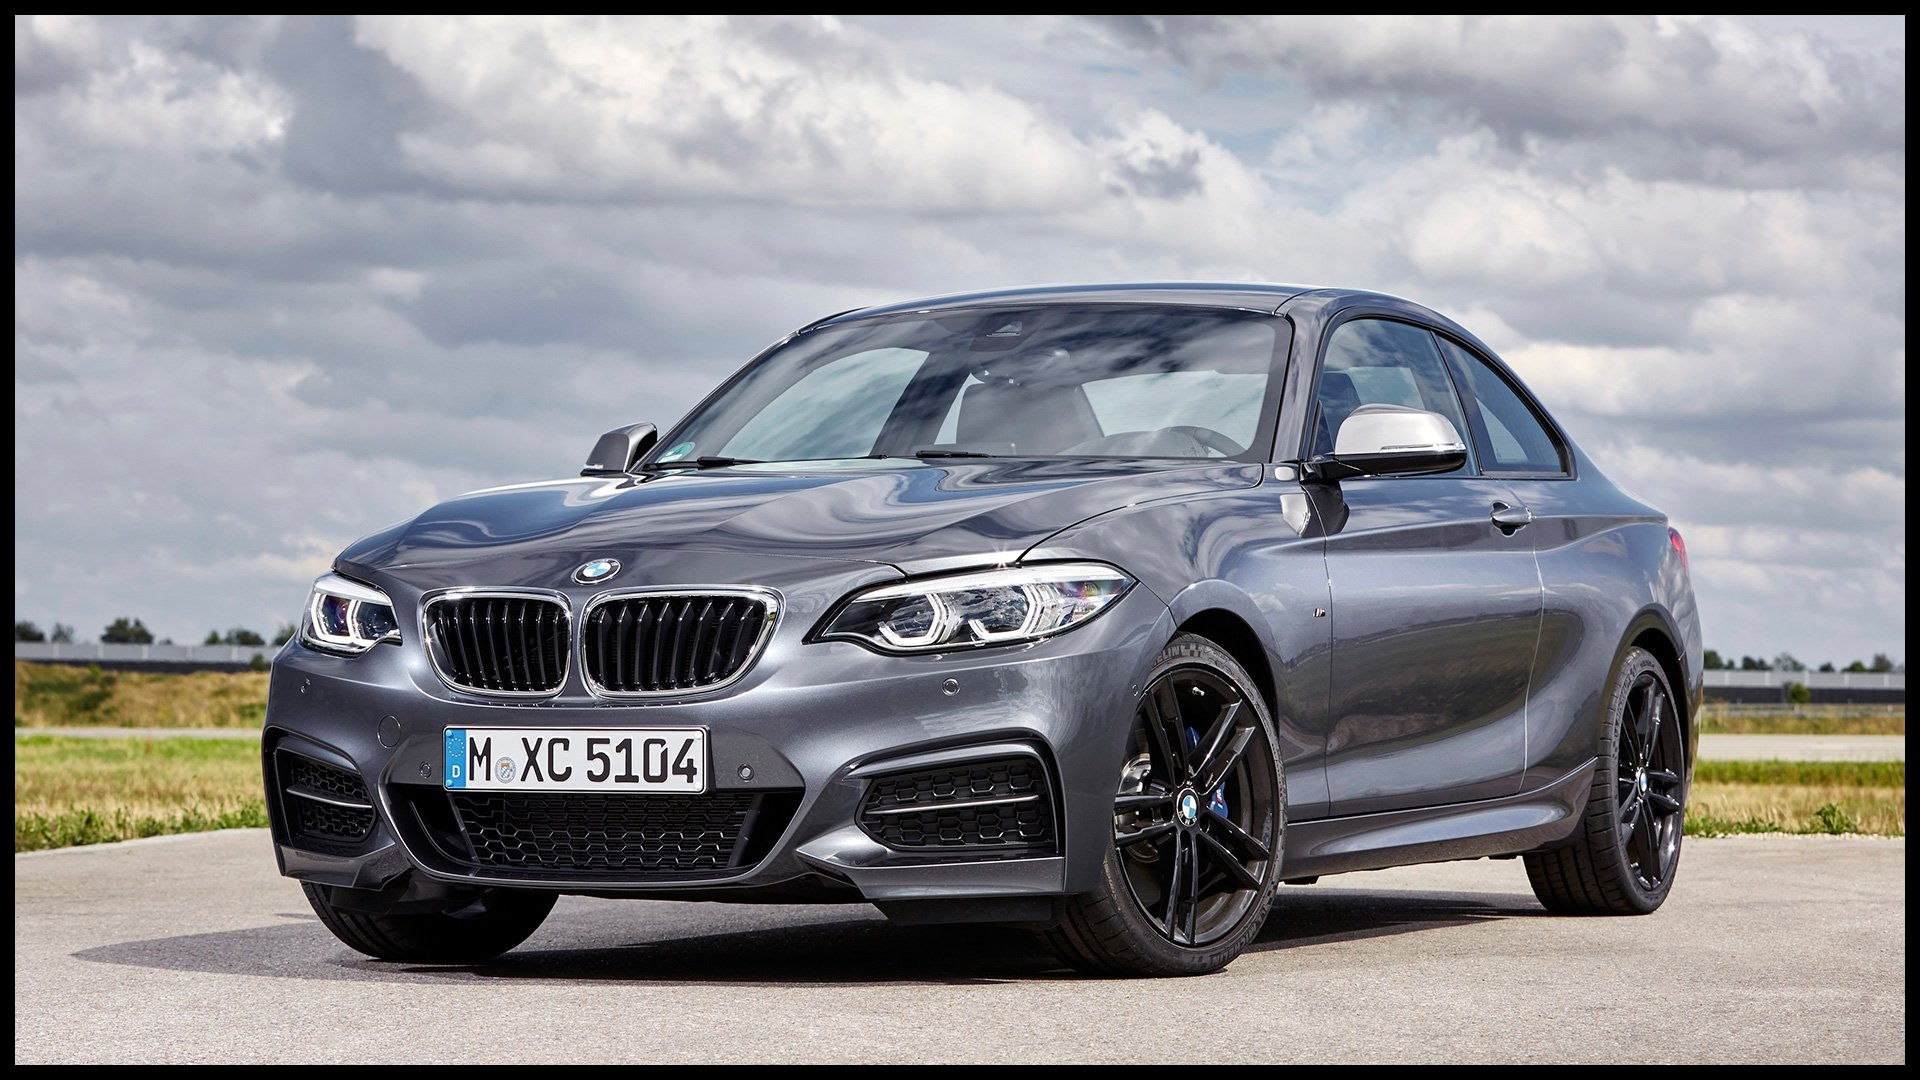 2018 BMW M240i Test Drive Review By BMW Standards a Performance Bargain The Drive